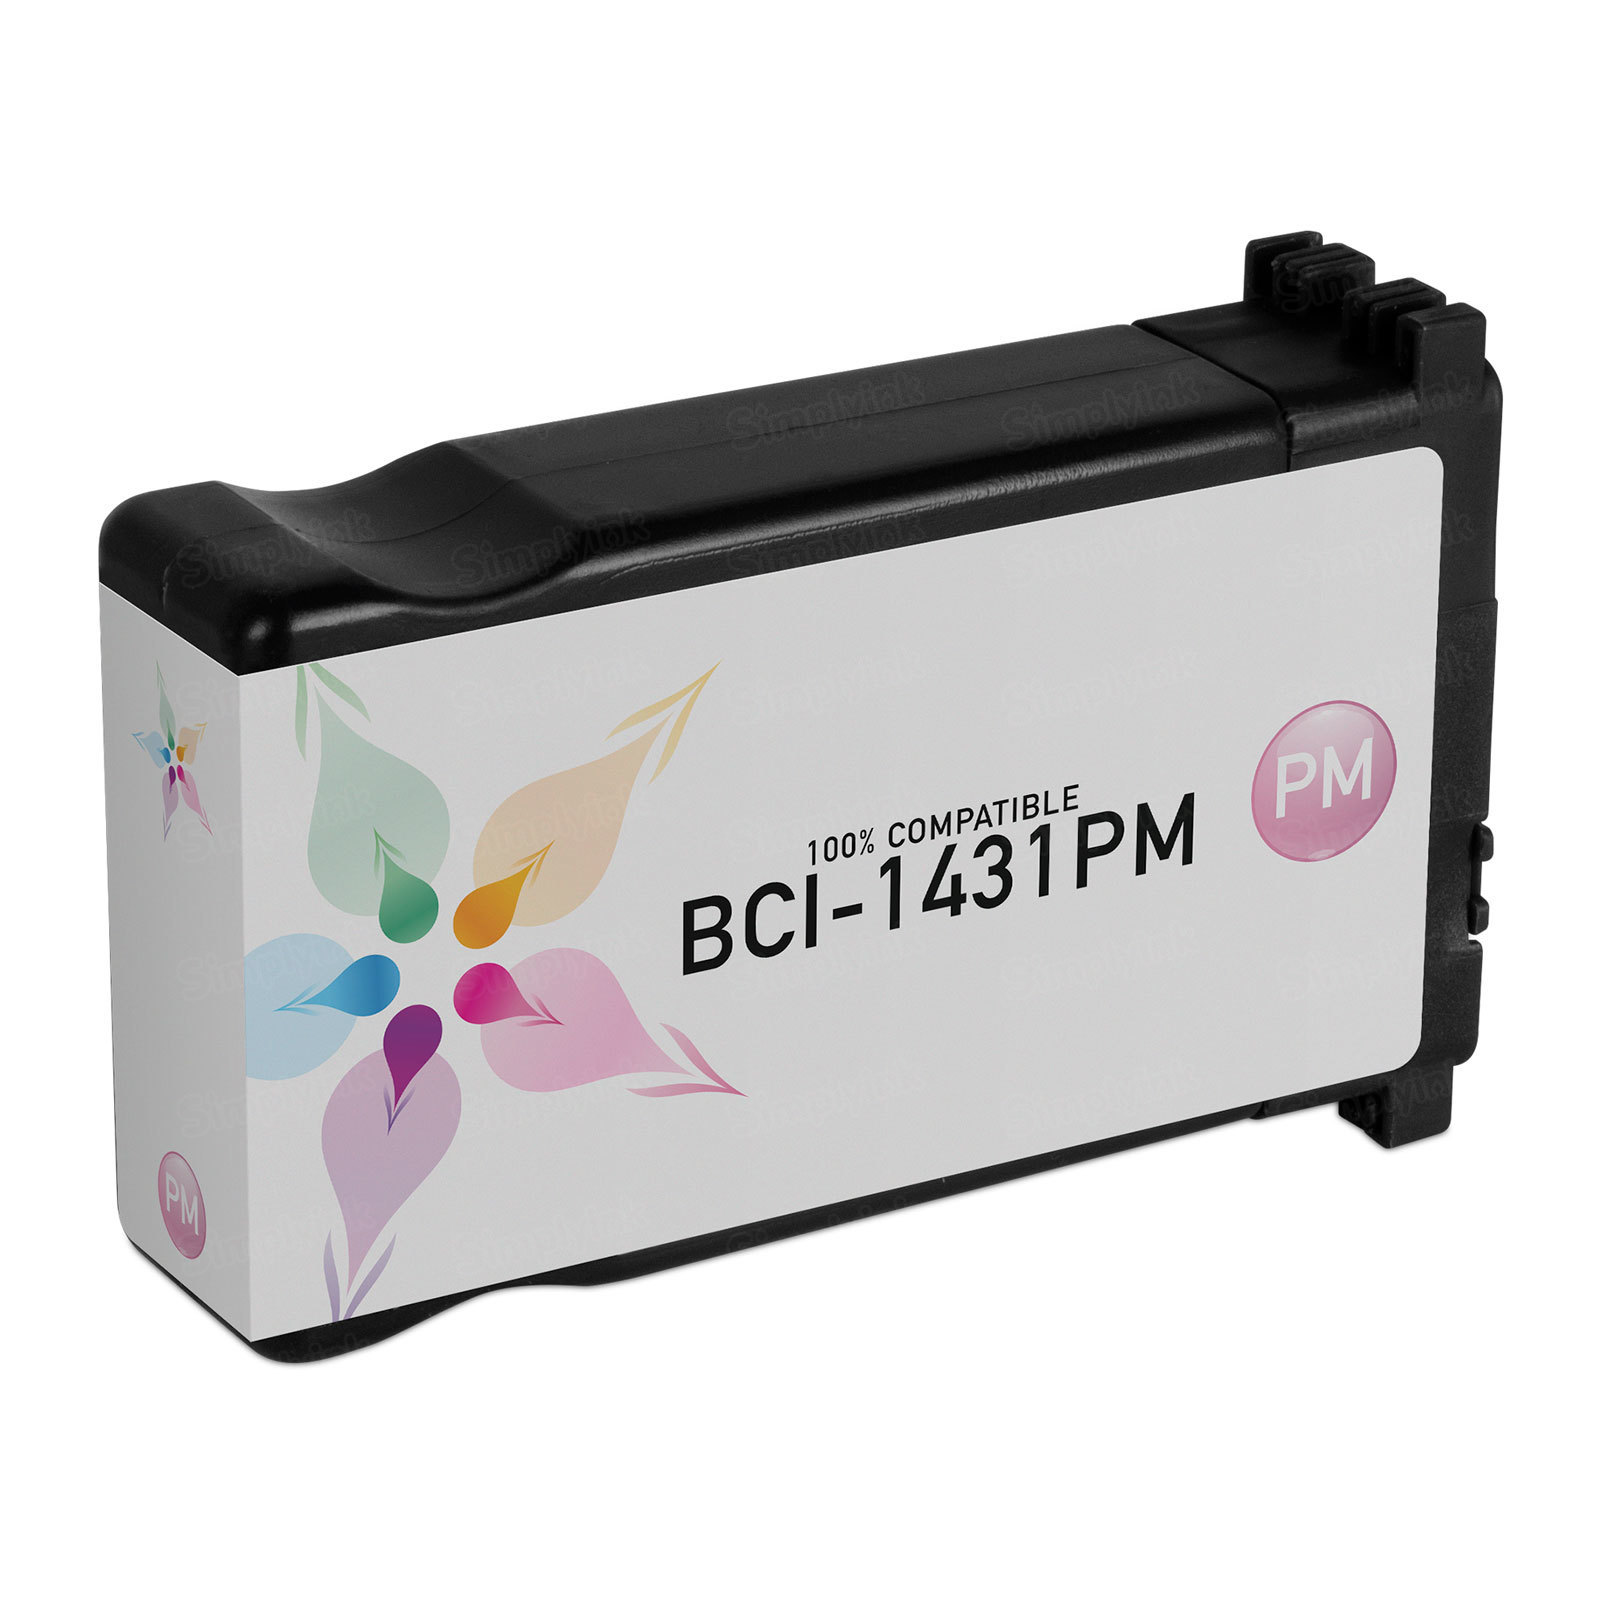 Canon Compatible BCI1431PM Photo Magenta Ink for imagePROGRAF W6200 & W6400